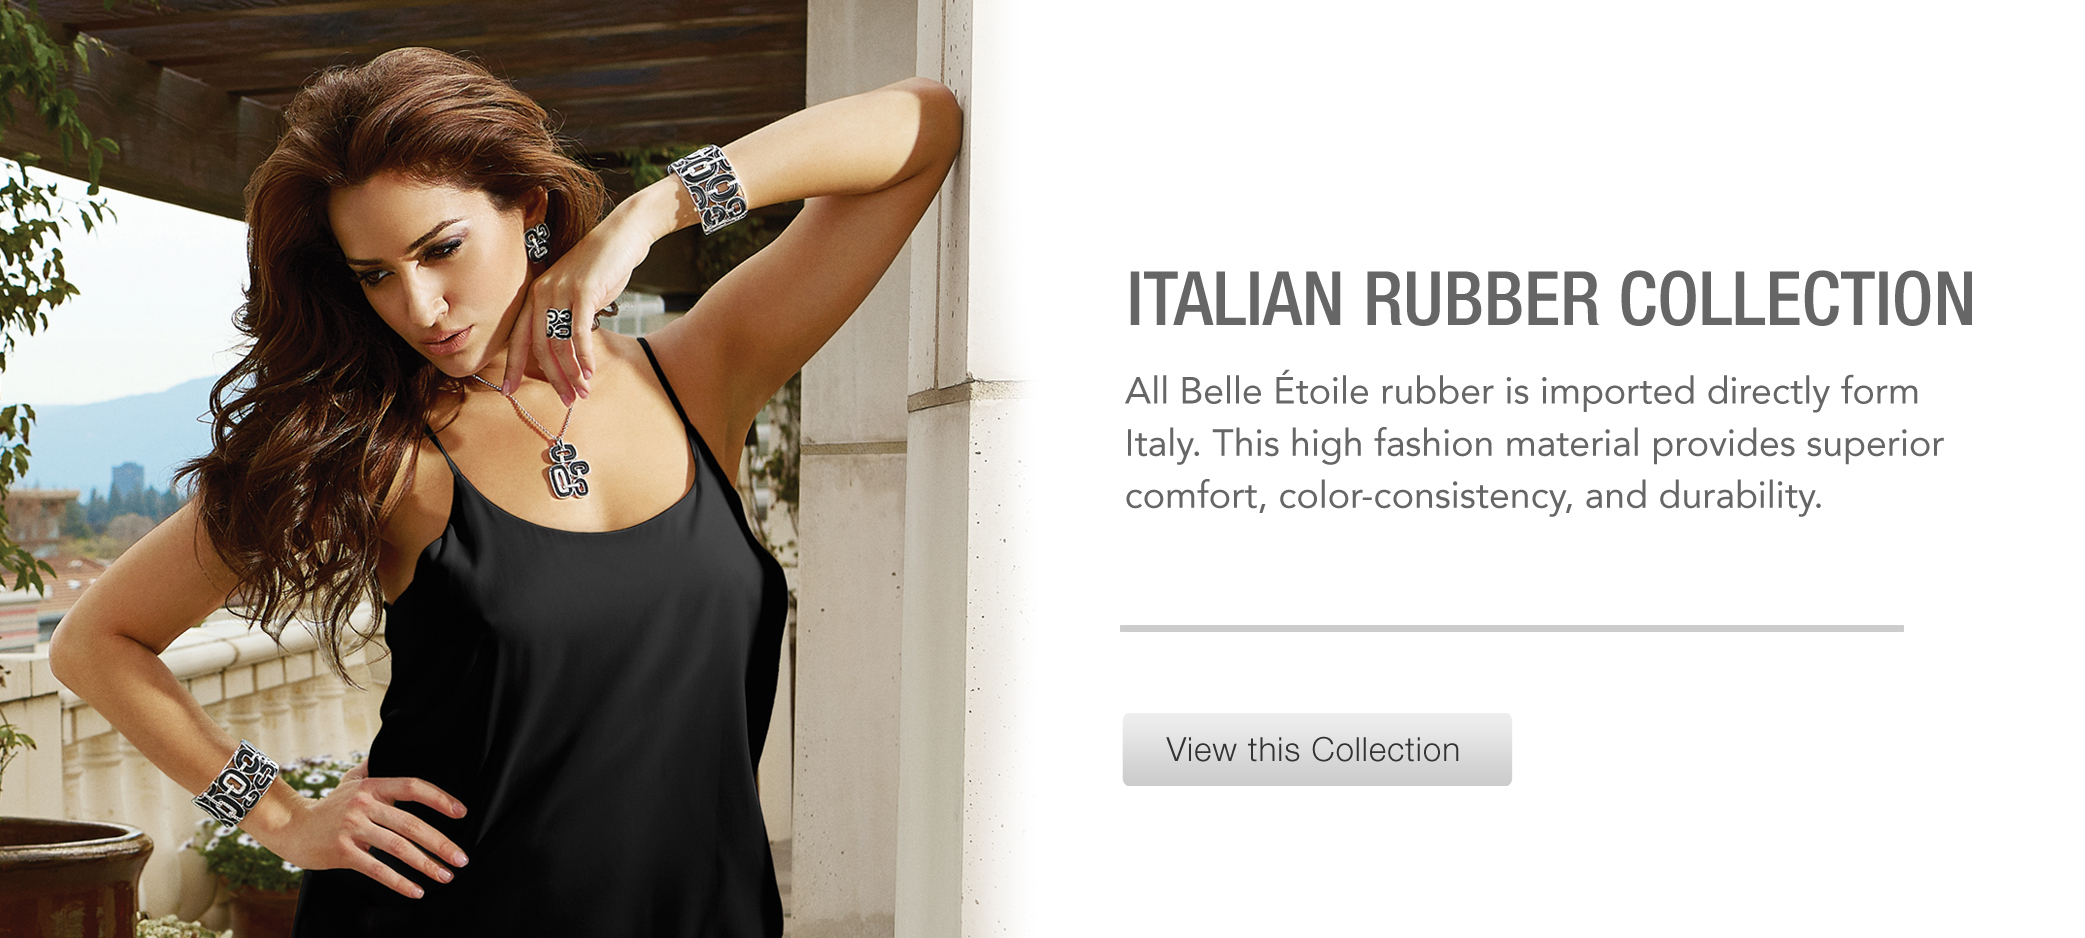 Italian Rubber Collection